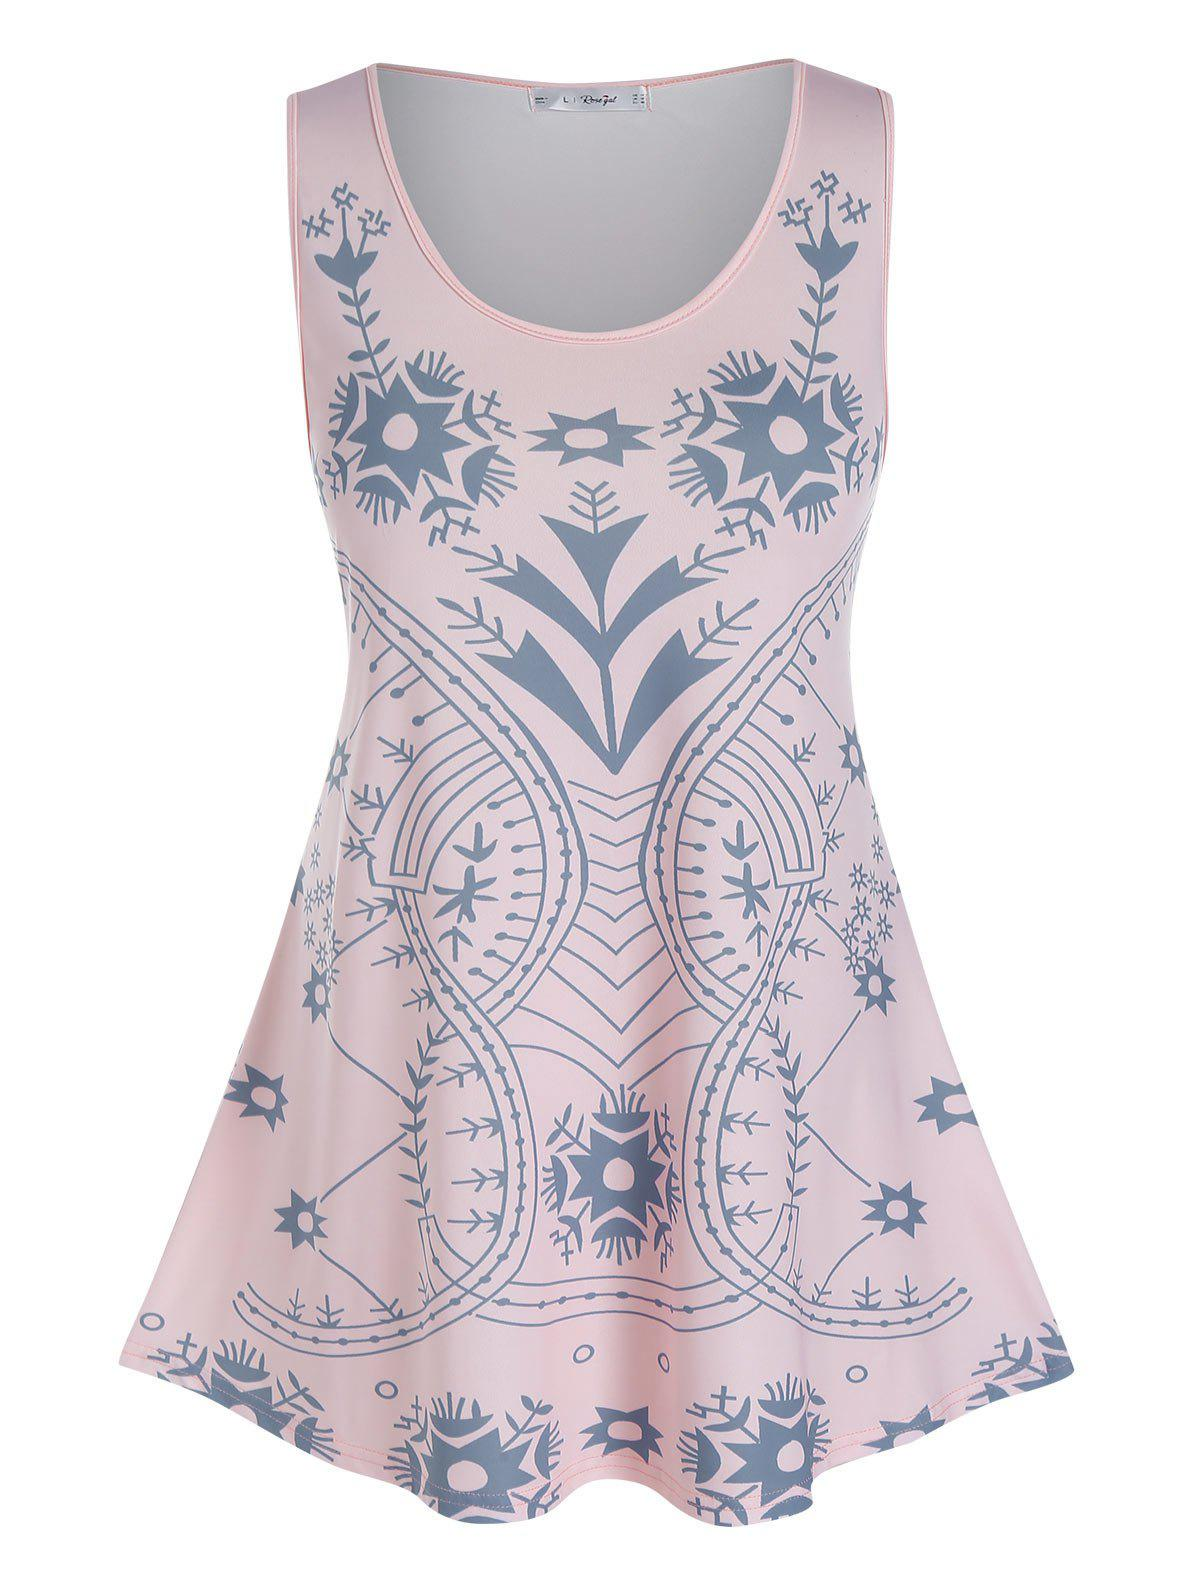 Plus Size Patterned Round Neck Tank Top - LIGHT PINK 4X